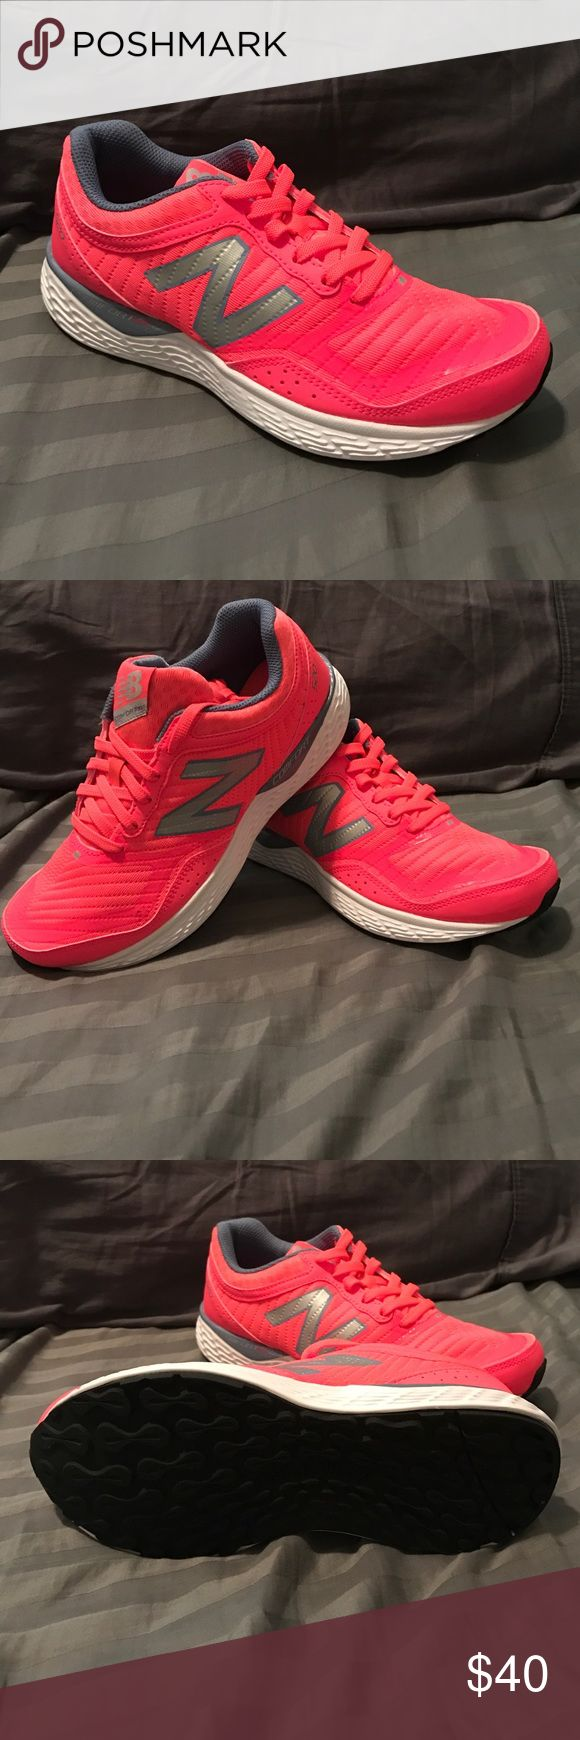 New Balance W520v2 Brand new women's New Balance w520v2 - color is coral/light blue New Balance Shoes Athletic Shoes